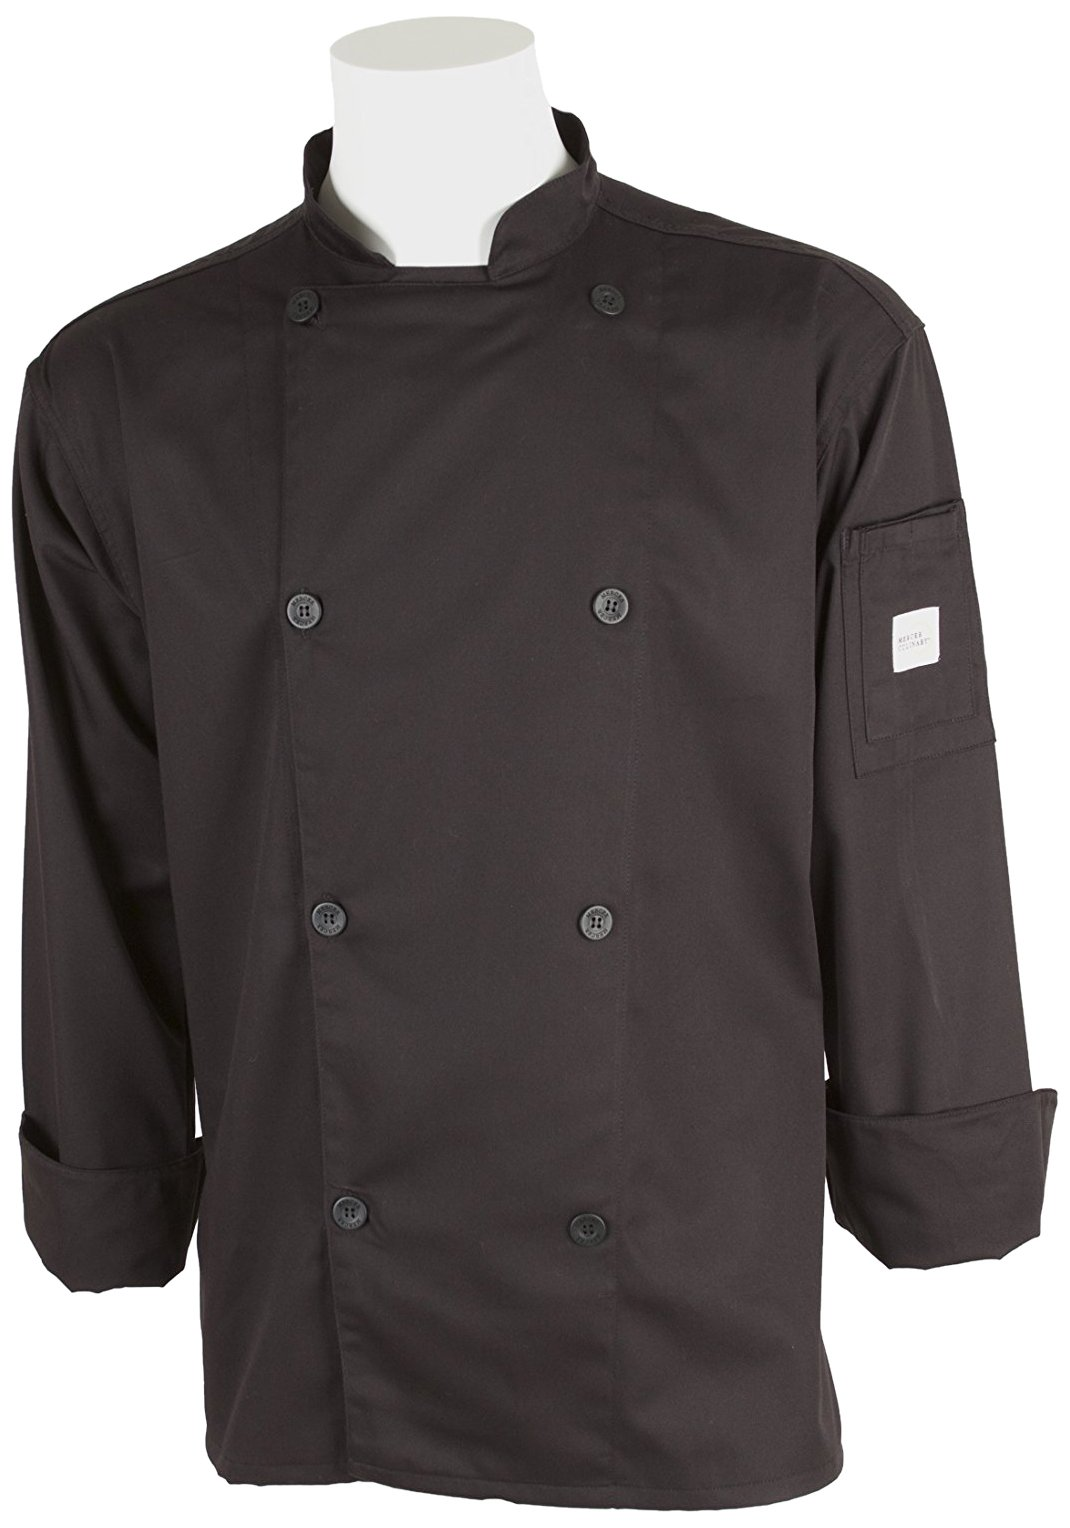 Mercer Culinary M61010BK5X Genesis Men's Chef Jacket with Traditional Buttons, 5X-Large, Black by Mercer Culinary